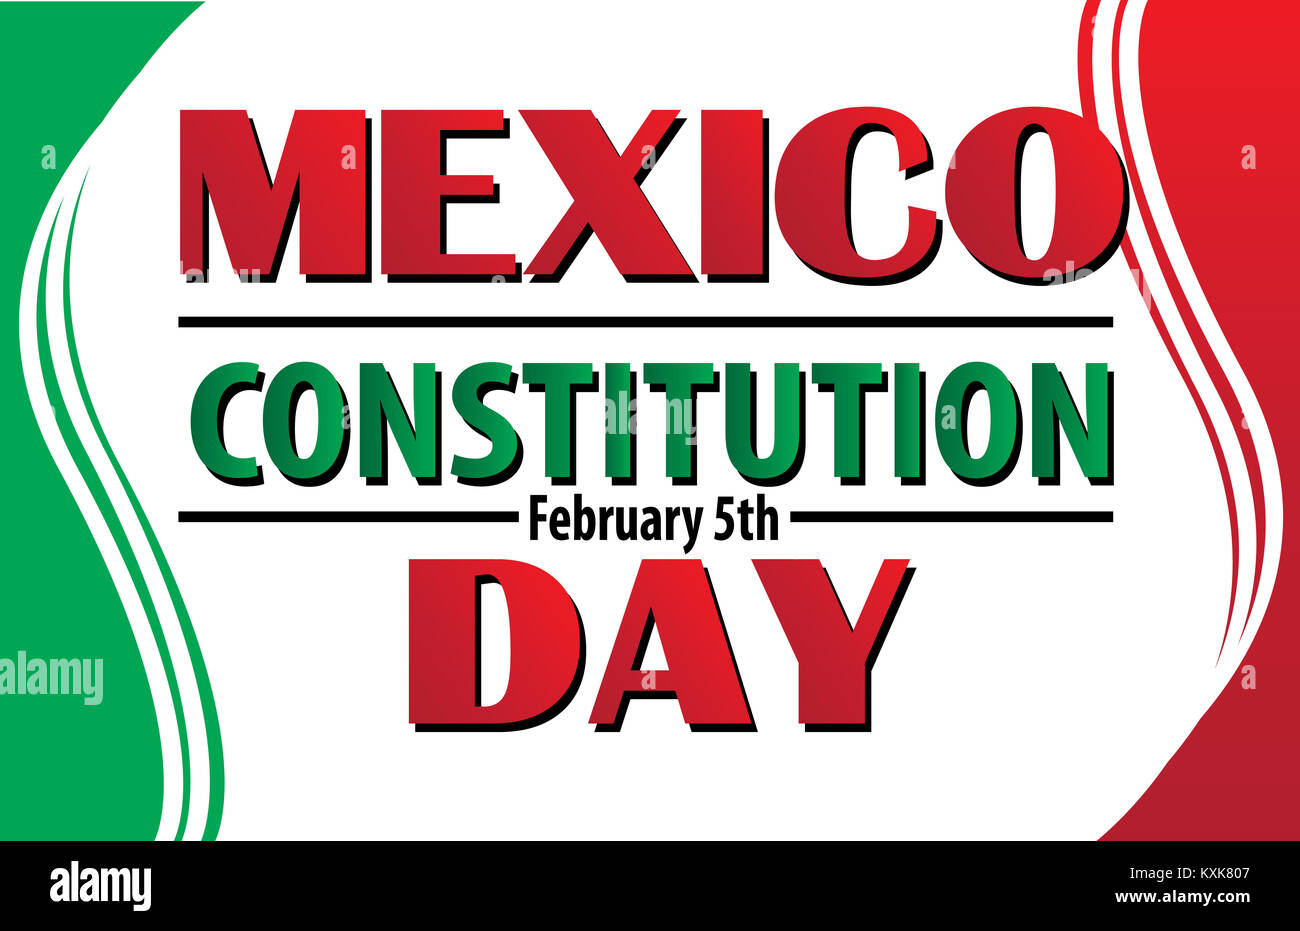 Lovely mexican flag colors images example resume and template mexico constitution day february 5 logo with mexican flag colors biocorpaavc Gallery